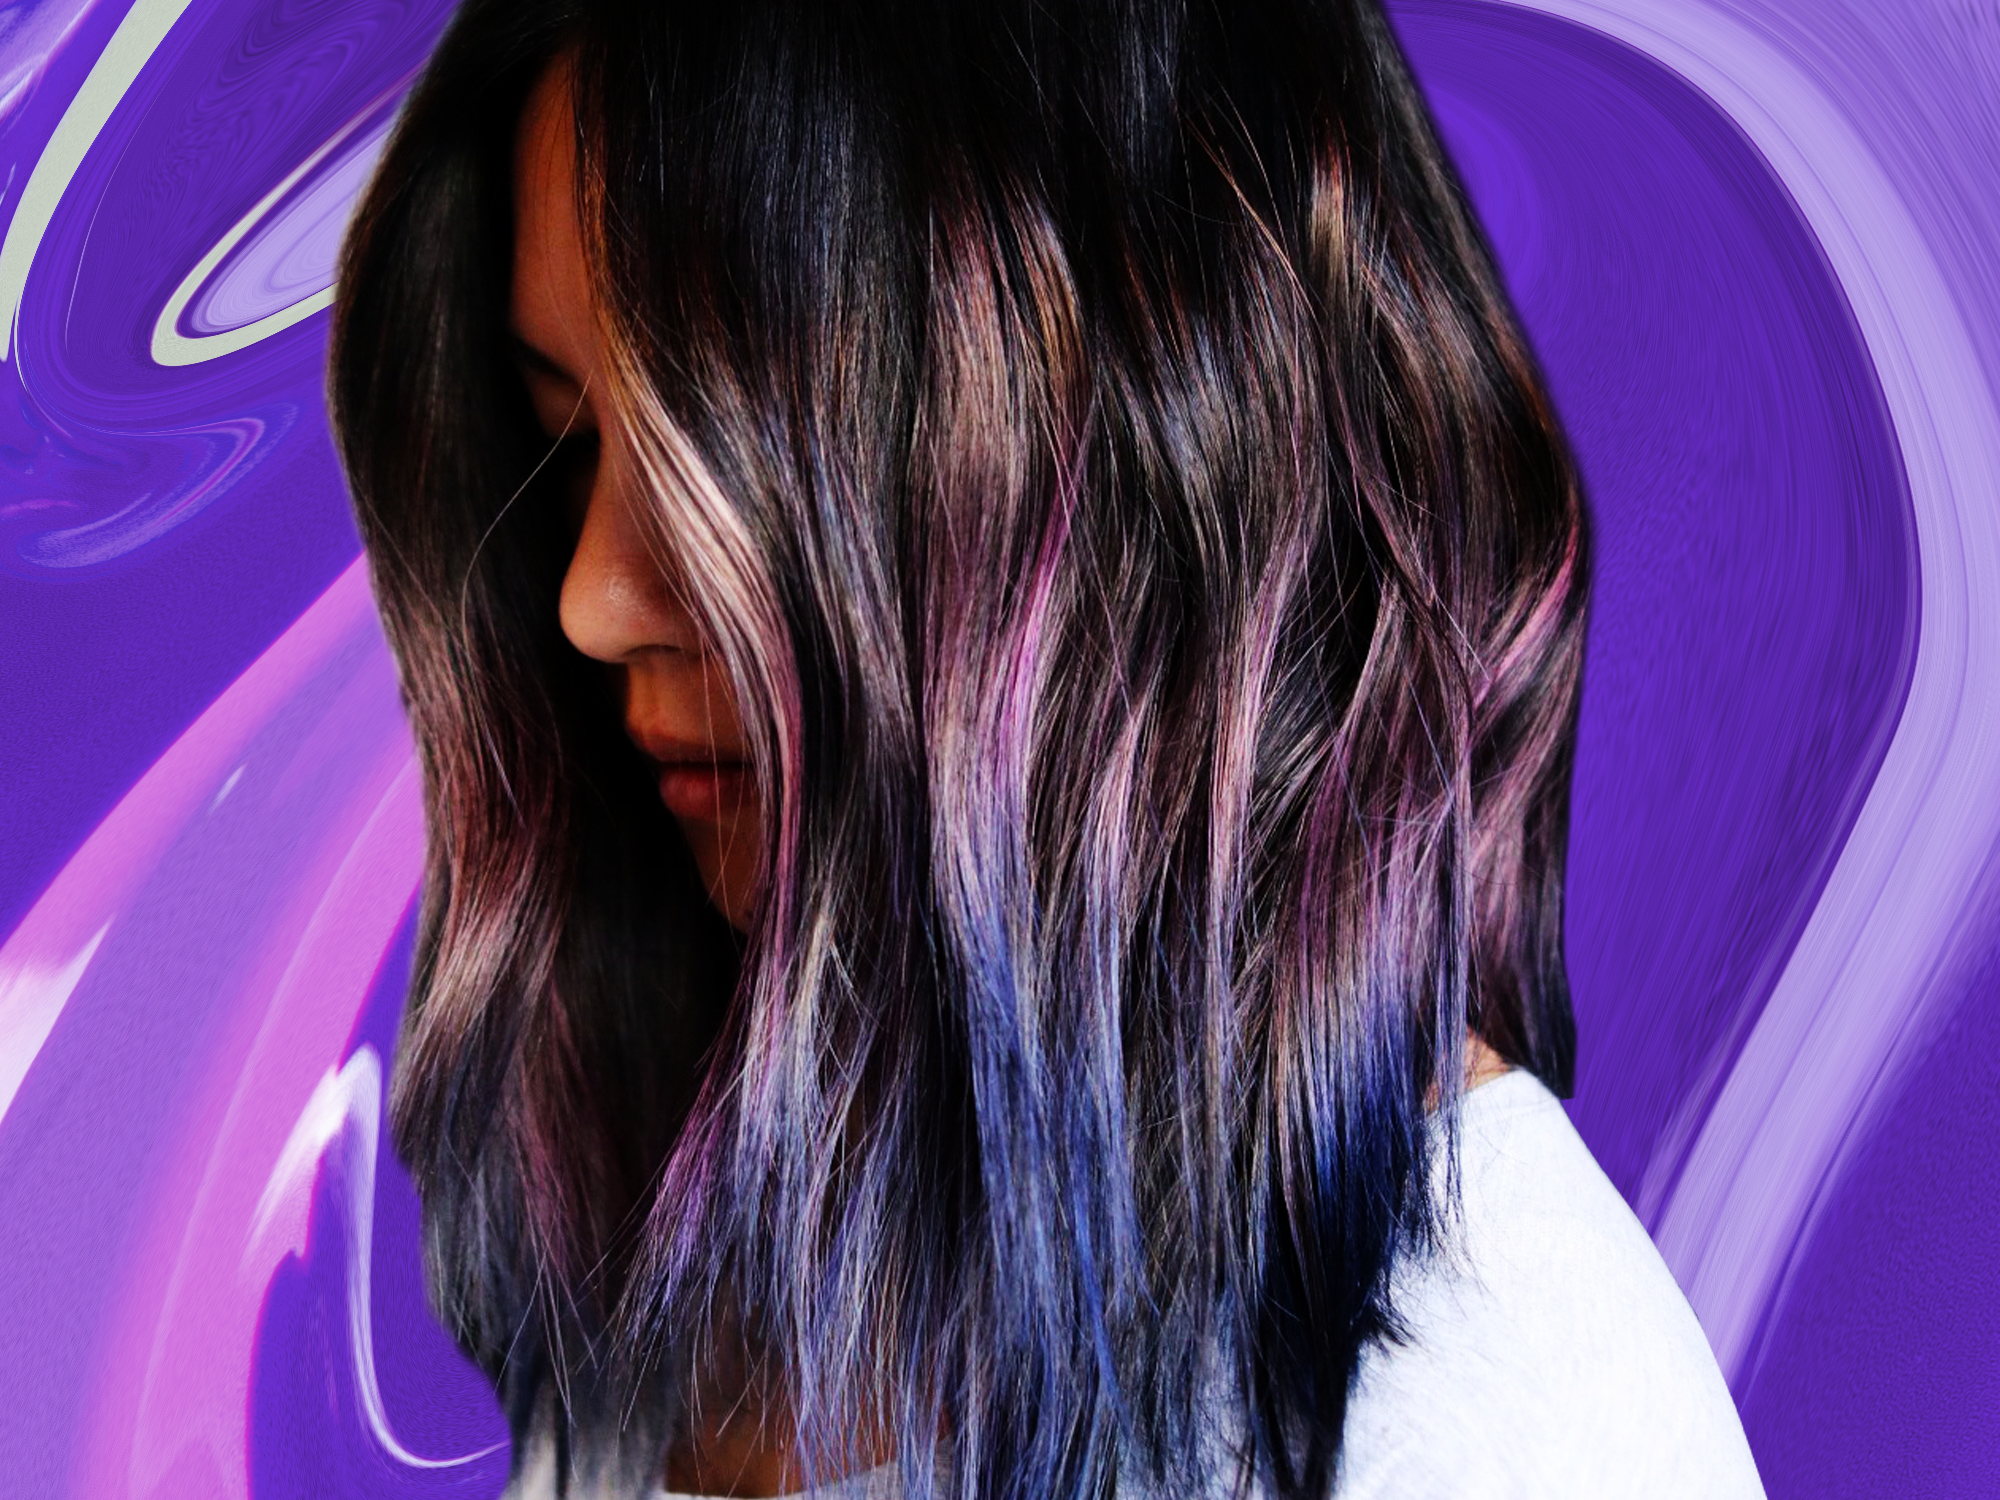 Beautiful geode hair twist with holographic purple